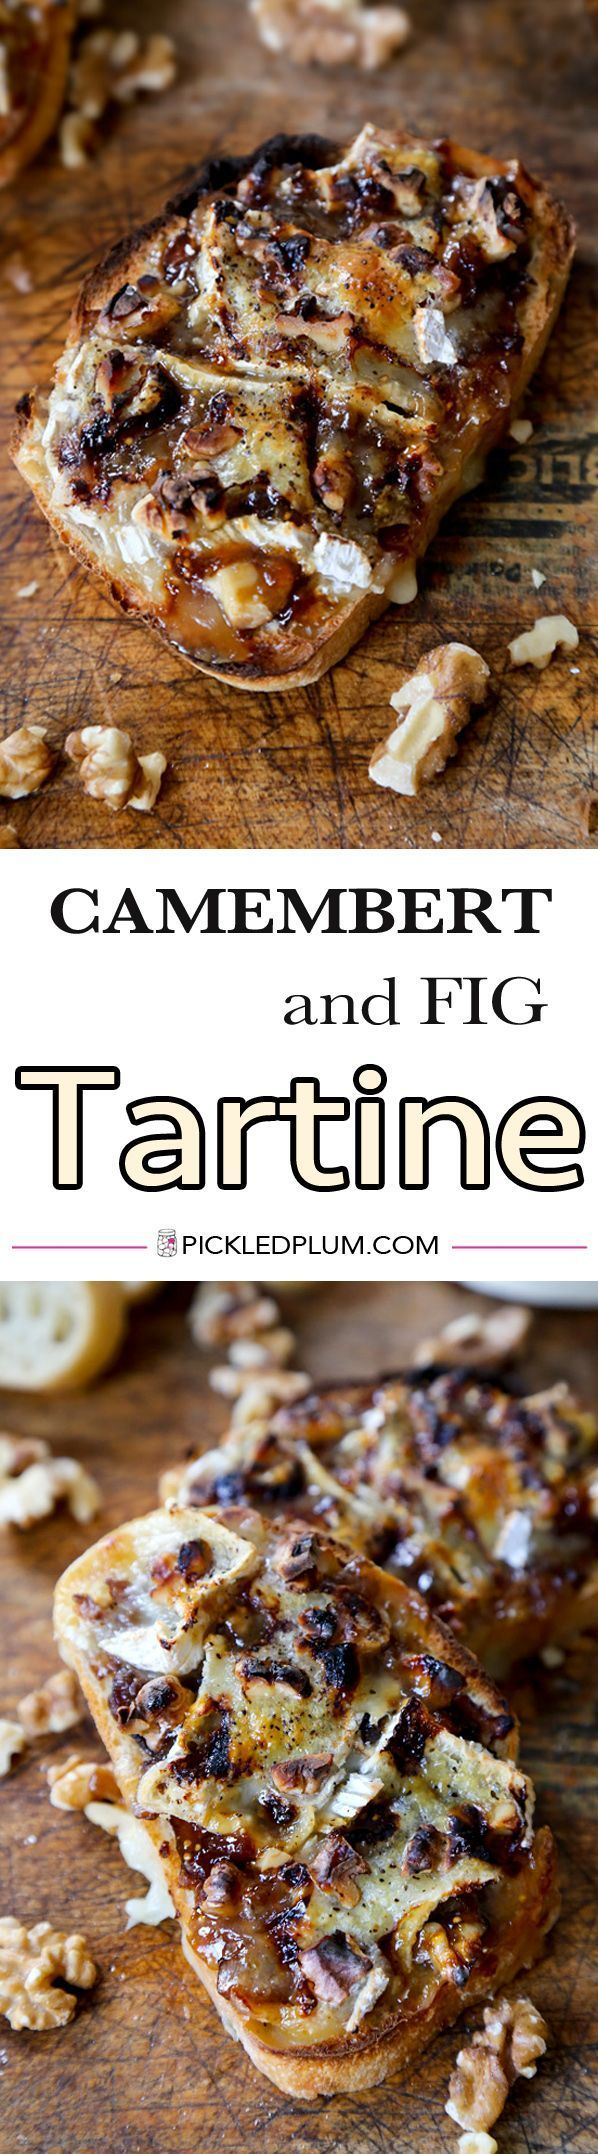 "Camembert and Fig Tartine with caramelized onion. Classic French comfort food that's quick and easy to make at home! <a href="""" rel=""nofollow"" target=""_blank"">www.pickledplum.c...</a>"